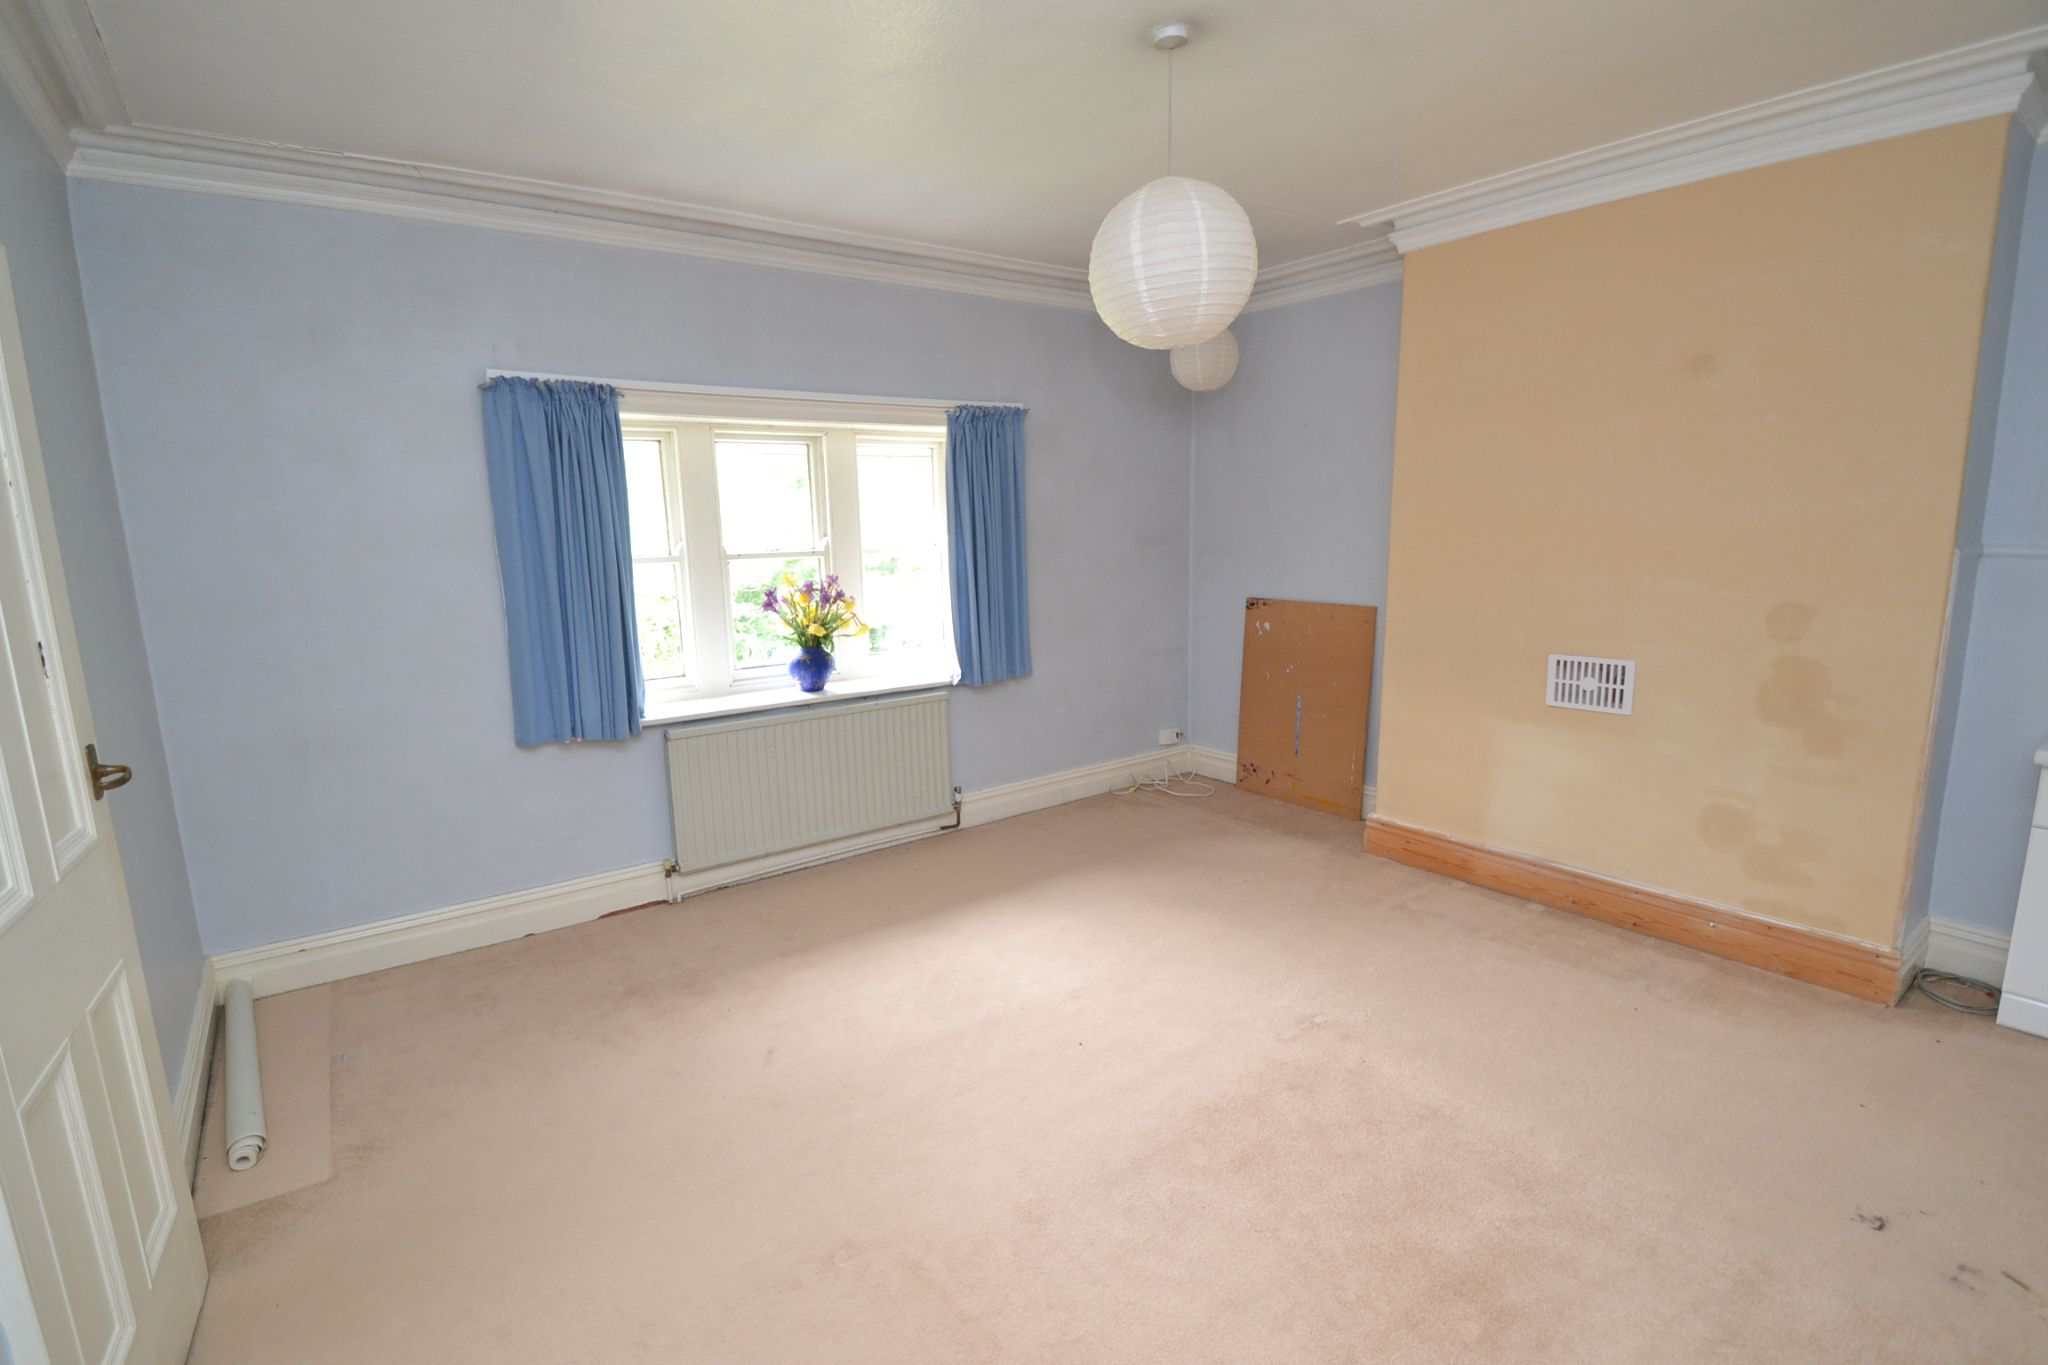 6 Bedroom Semi-detached House For Sale - Photograph 18